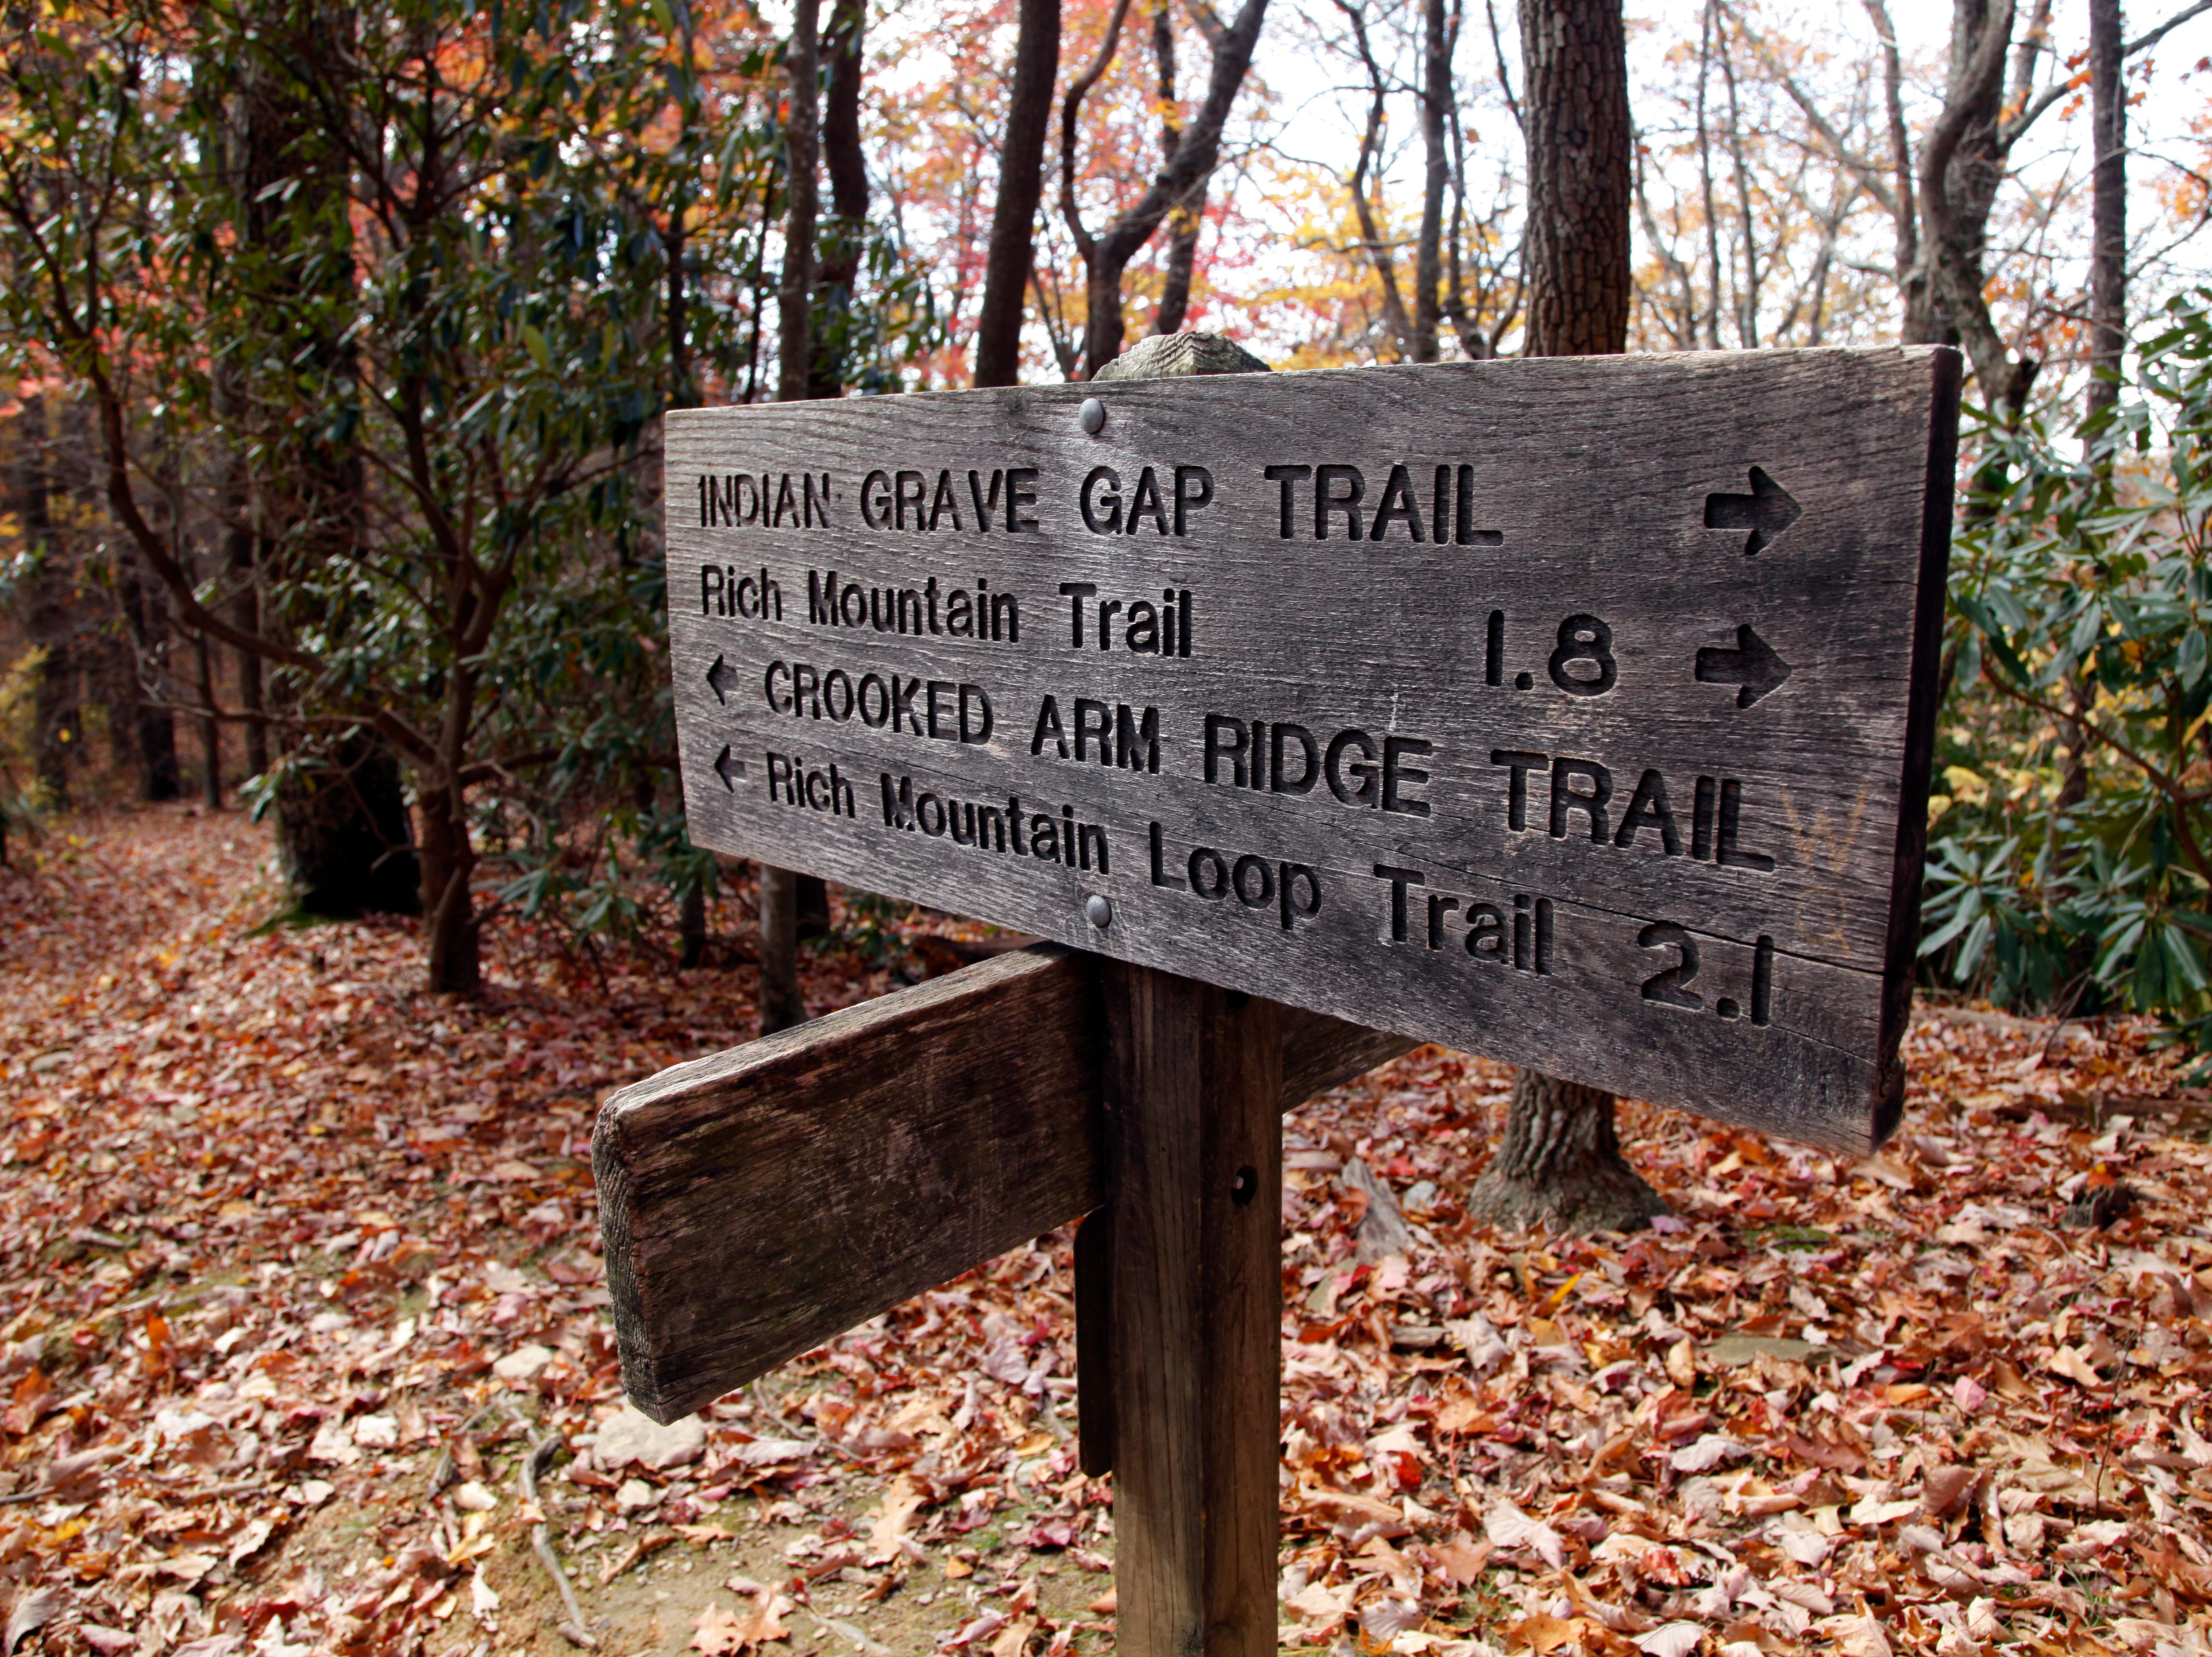 Hikers traveling on the 8.5 mile Rich Mountain Loop Trail need to pay attention to signs along the way as the hike coincides with the Indian Grave Gap and Crooked Arm Ridge Trails in the Great Smoky Mountains National Park near Cades Cove Wednesday, Oct. 26, 2011.  (ADAM BRIMER/NEWS SENTINEL)